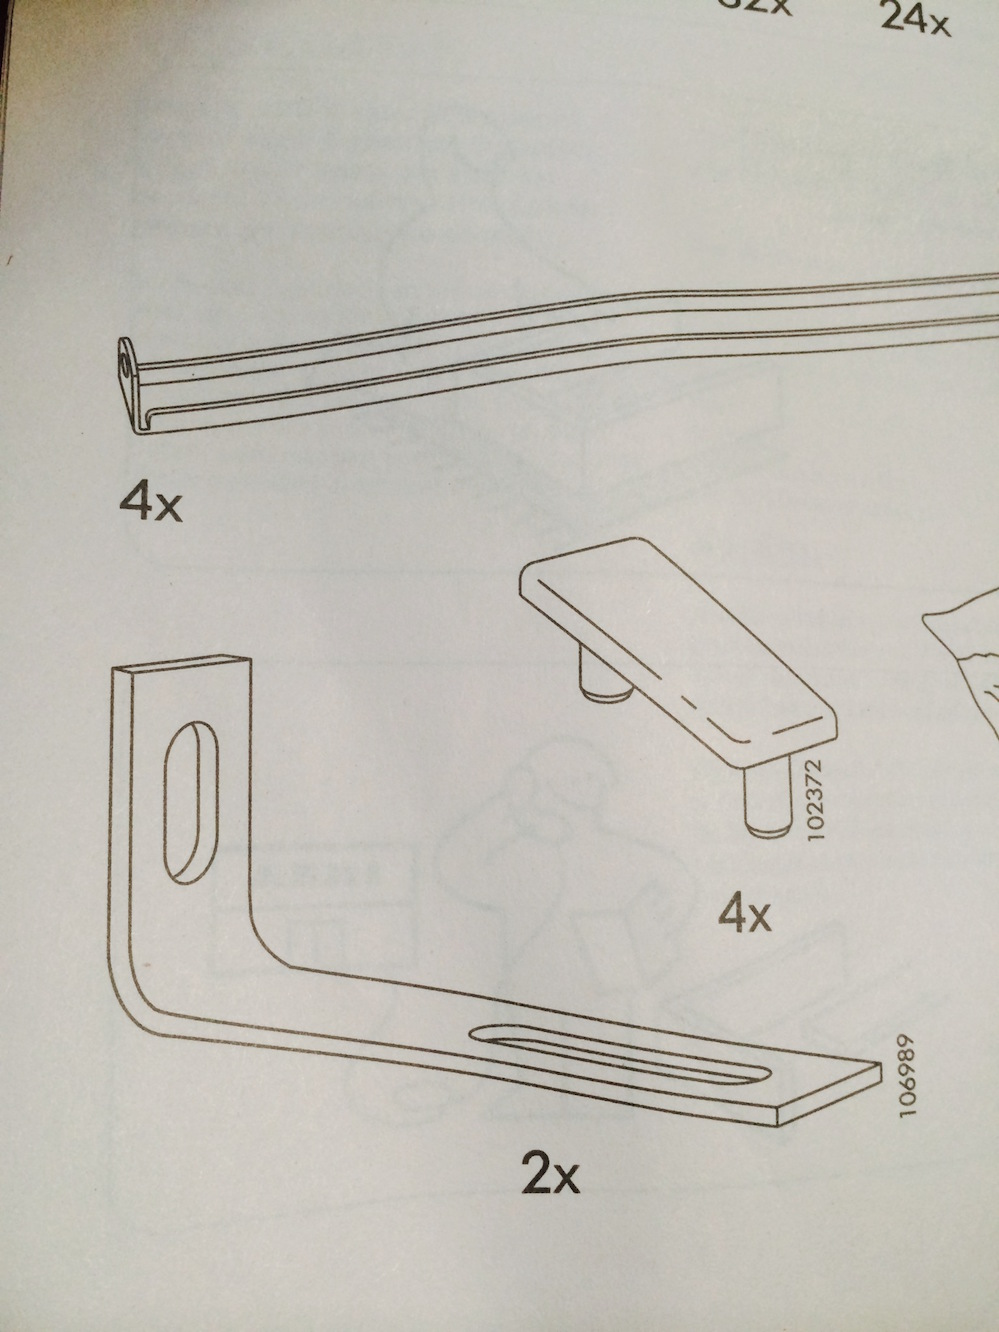 MALM IKEA instruction